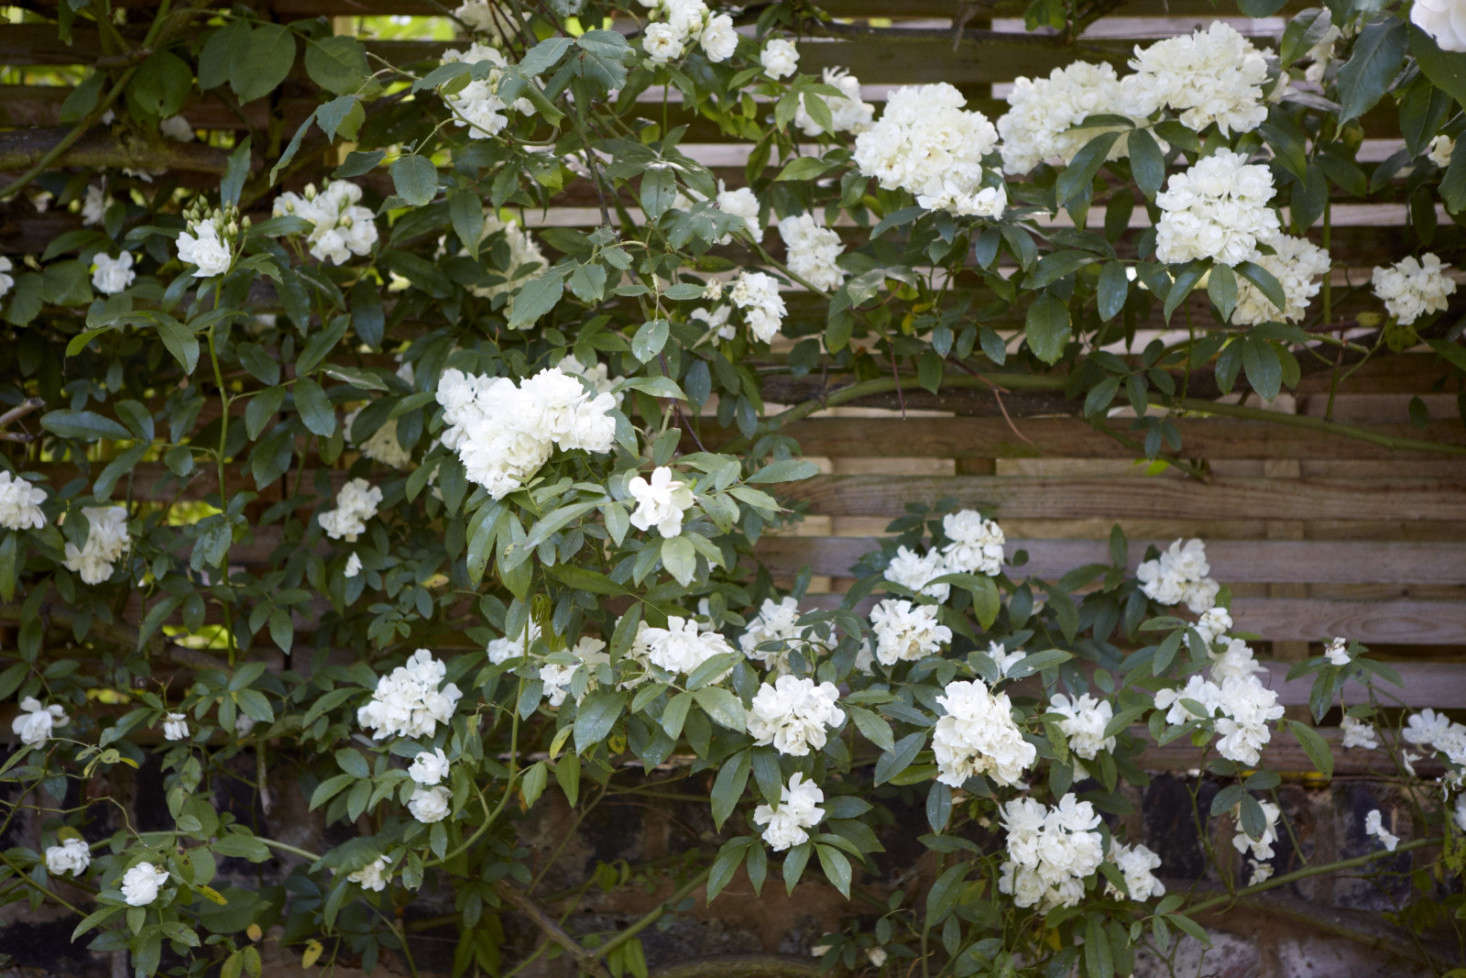 Rosa 'Madame Alfred Carriere' scrawls laterally along the horizontal slats of the perimeter fence.